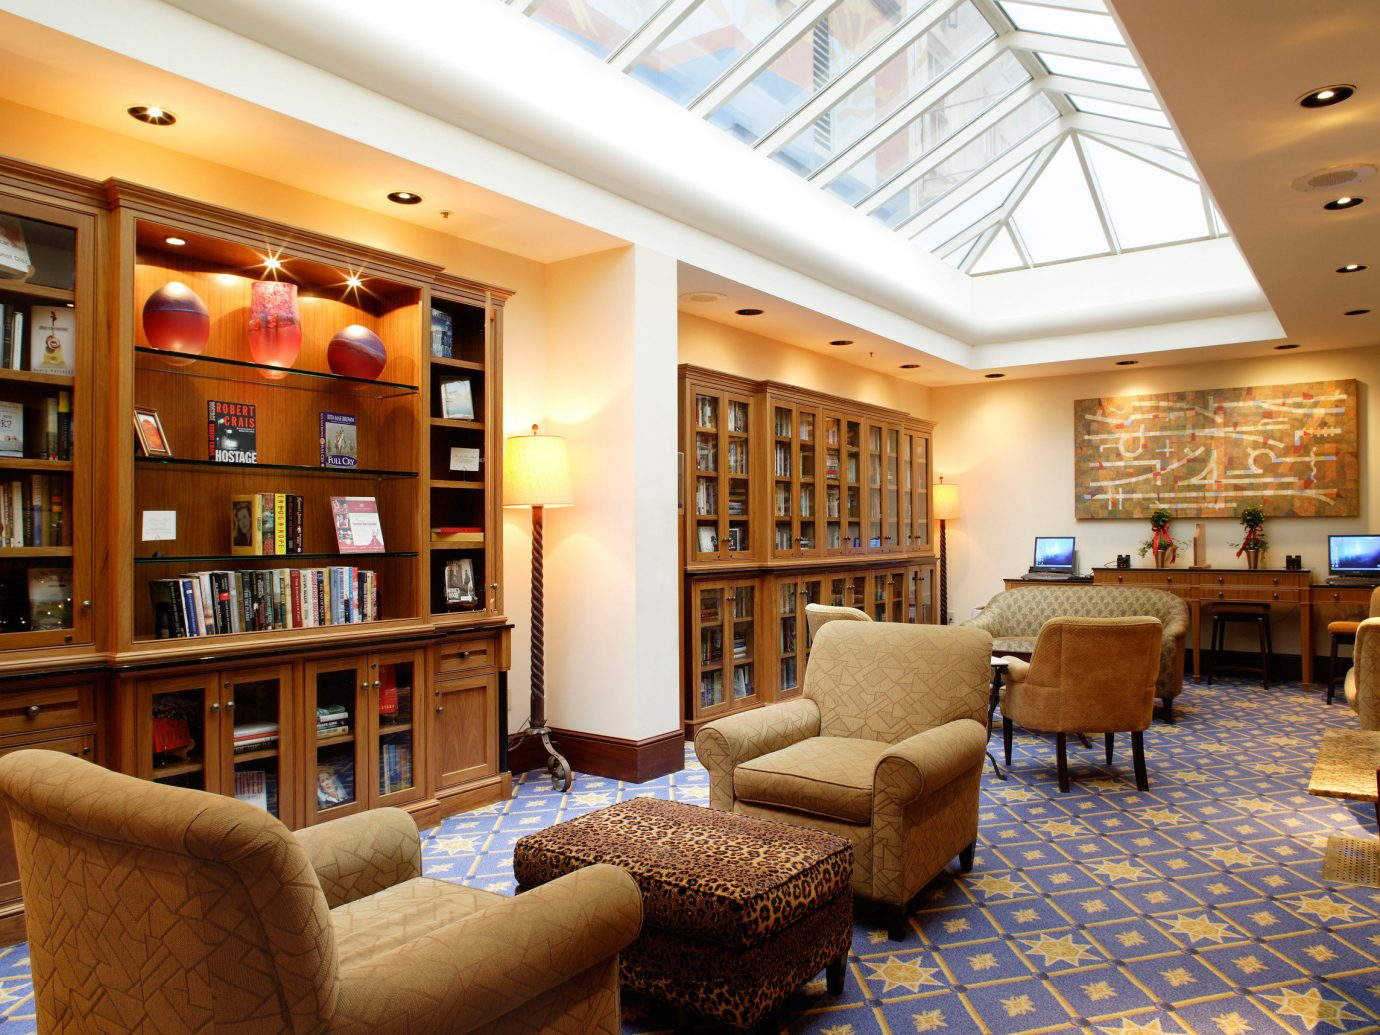 Hotels Lounge Modern indoor ceiling Living room floor wall property living room Lobby furniture estate condominium interior design home real estate recreation room area decorated